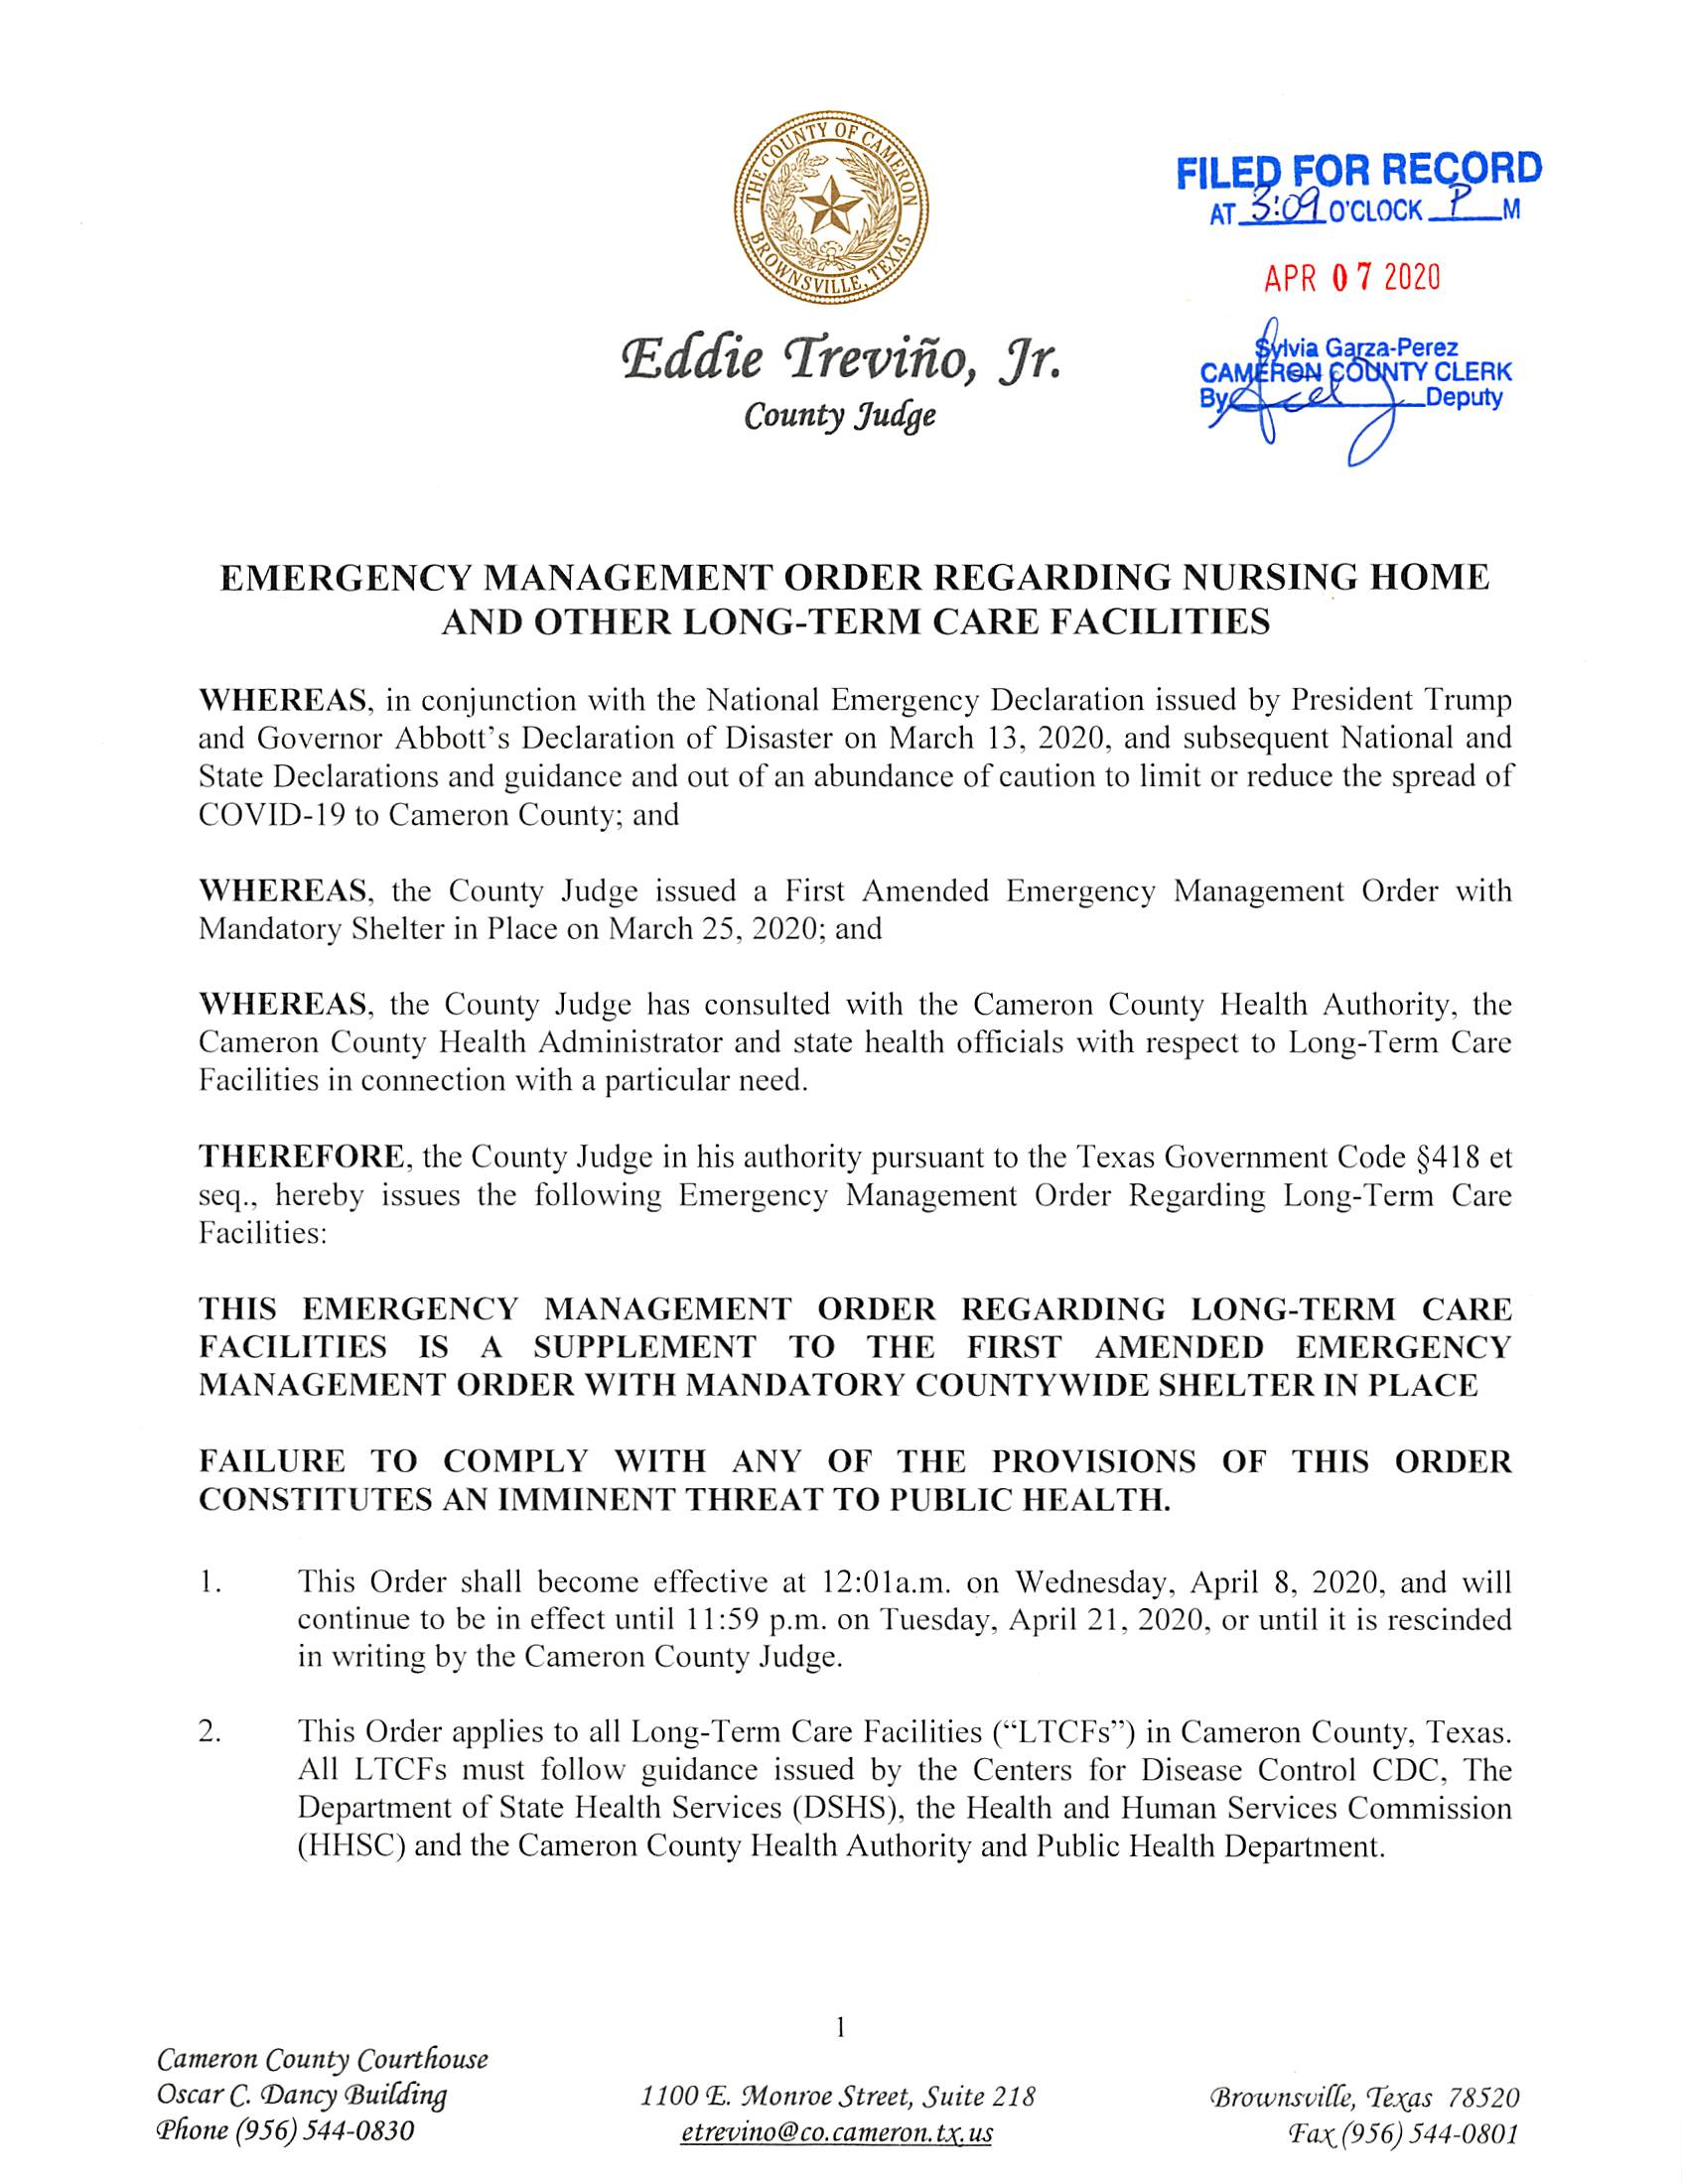 04.07.2020 Emergency Management Order Regarding Nursery Home And Other Long Term Care Facilities Page 1